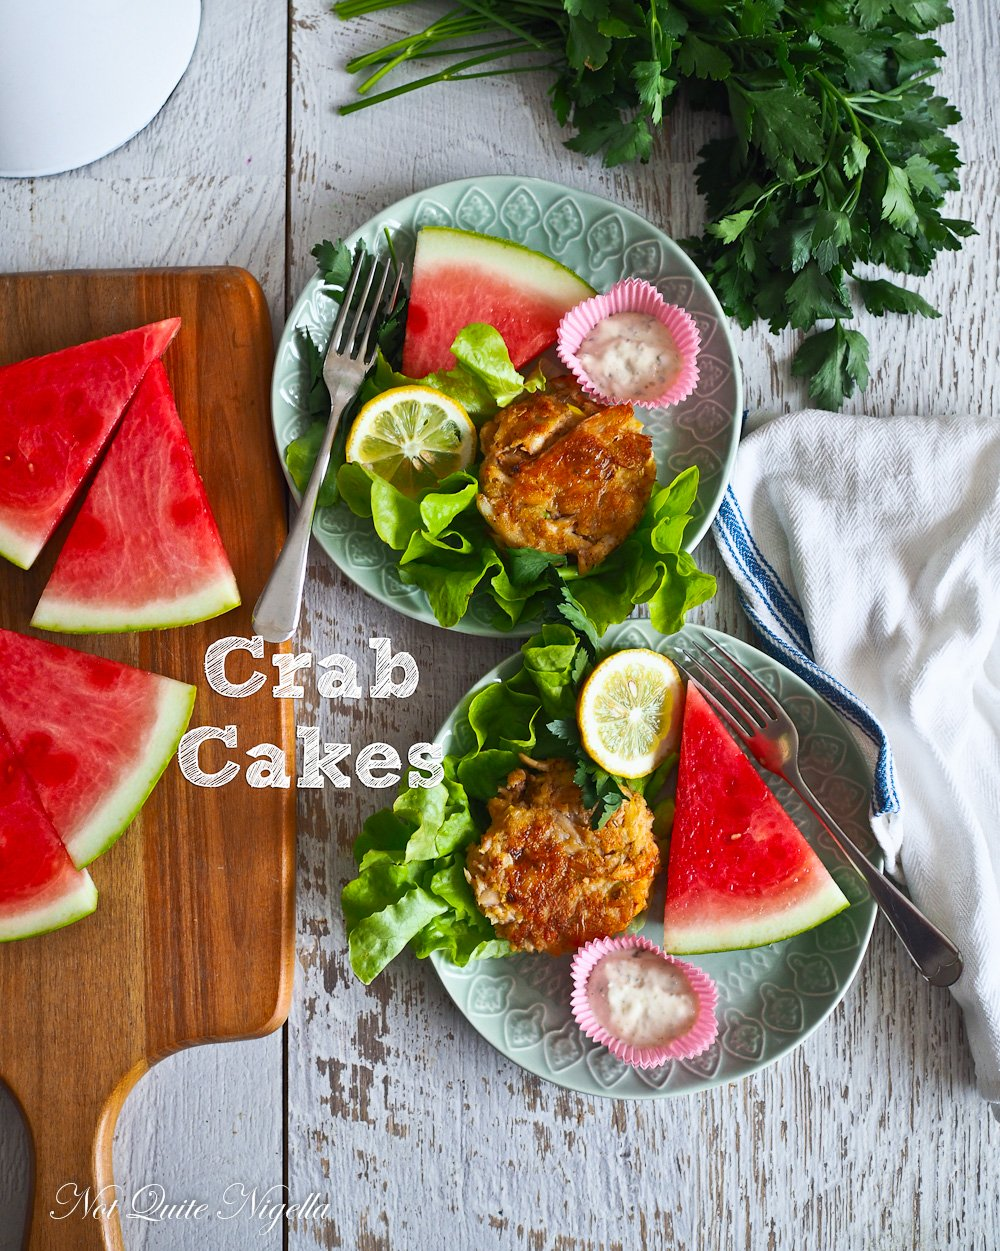 Best Maryland Style Crab Cakes